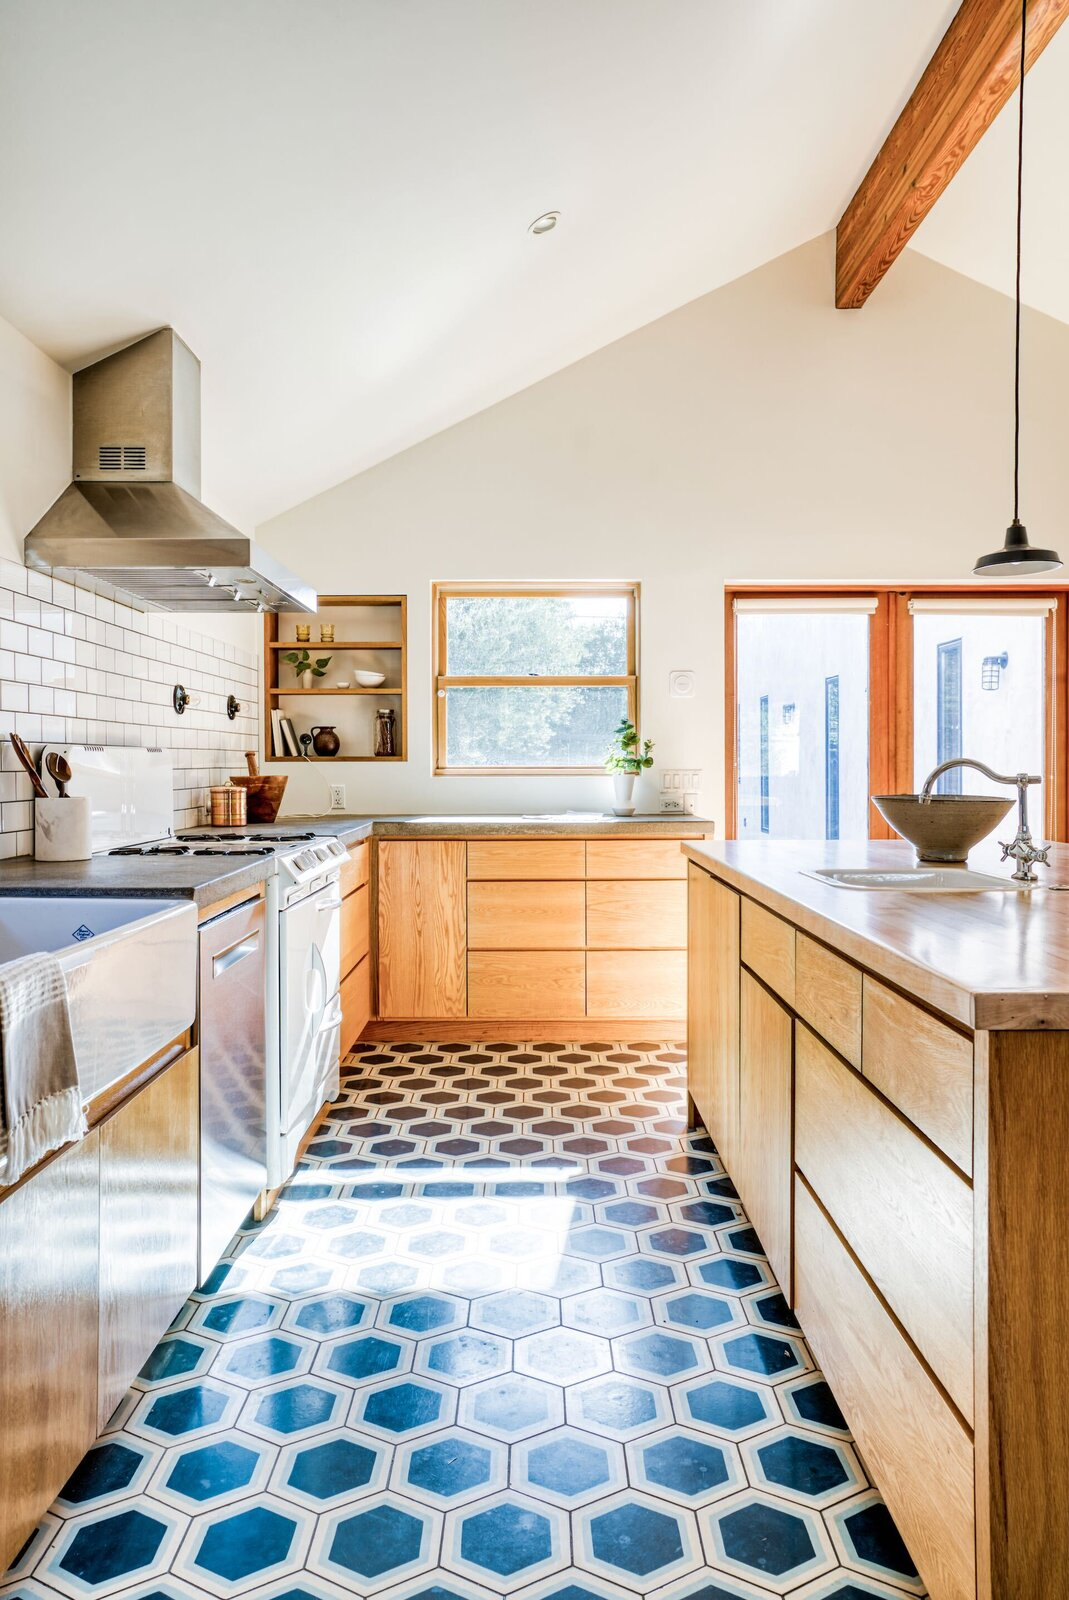 The kitchen features ample wood cabinetry, hexagonal tile flooring in a saturated blue, and a vintage-style range.  Photo 5 of 15 in In Los Angeles, a Remixed Craftsman Bungalow Lists for $1.9M